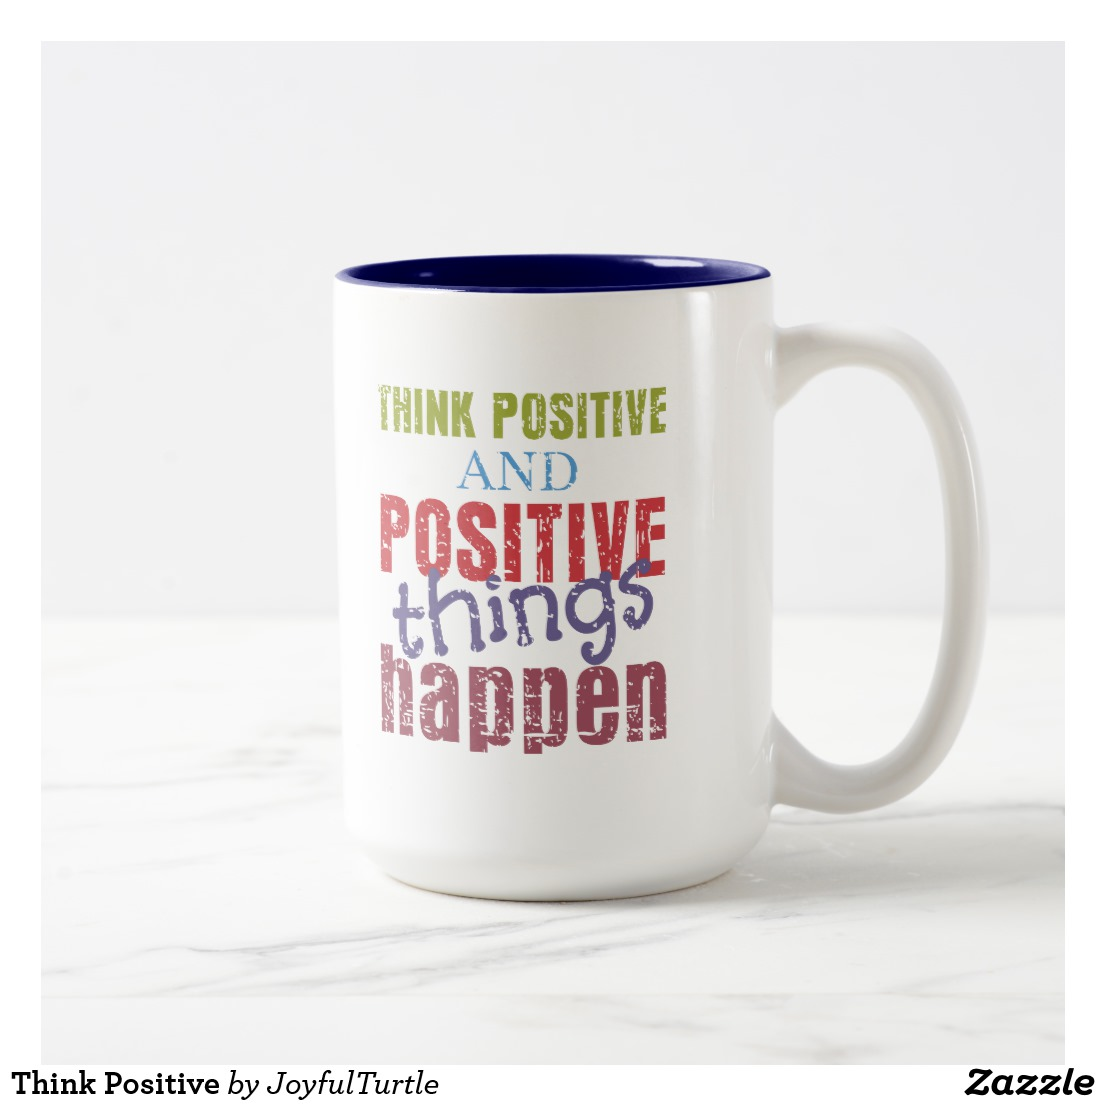 Think Positive Two-Tone Coffee Mug Image